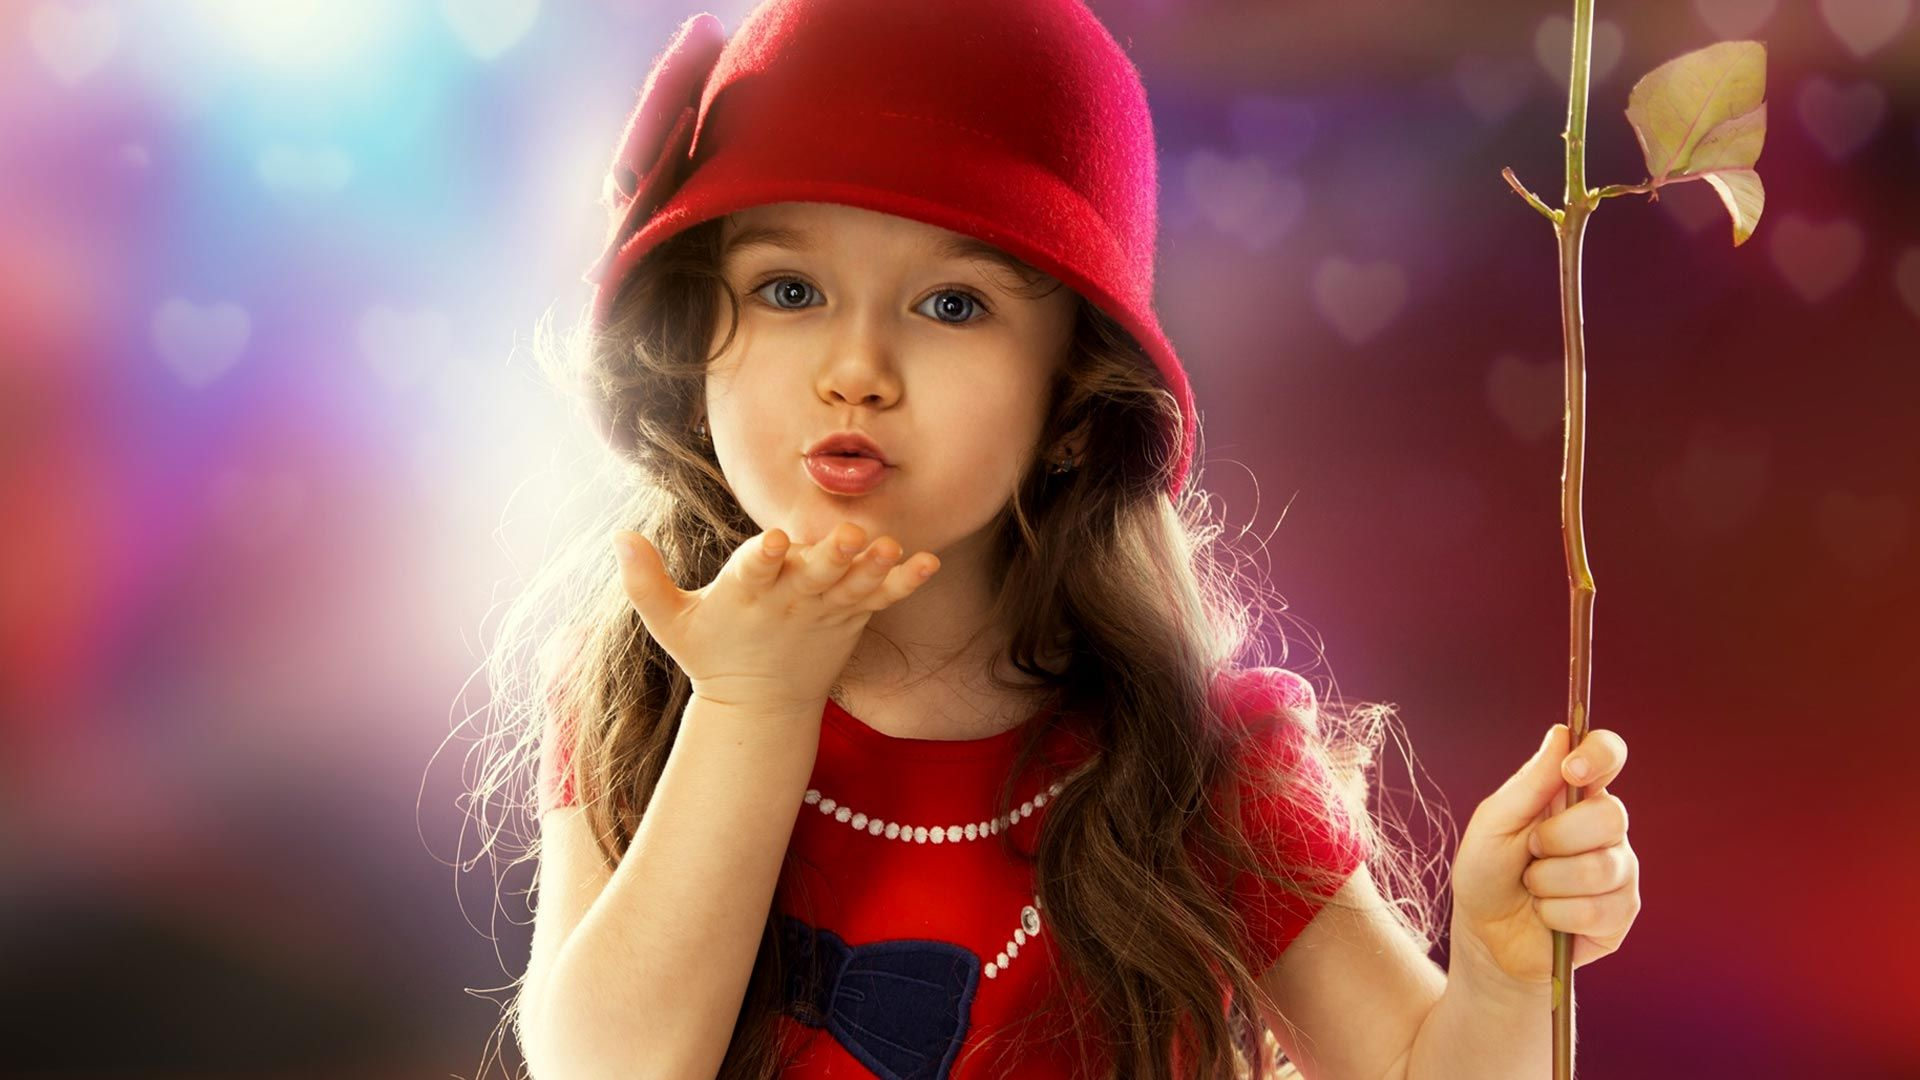 sweet little girl hd images | hd wallpapers | pinterest | hd images